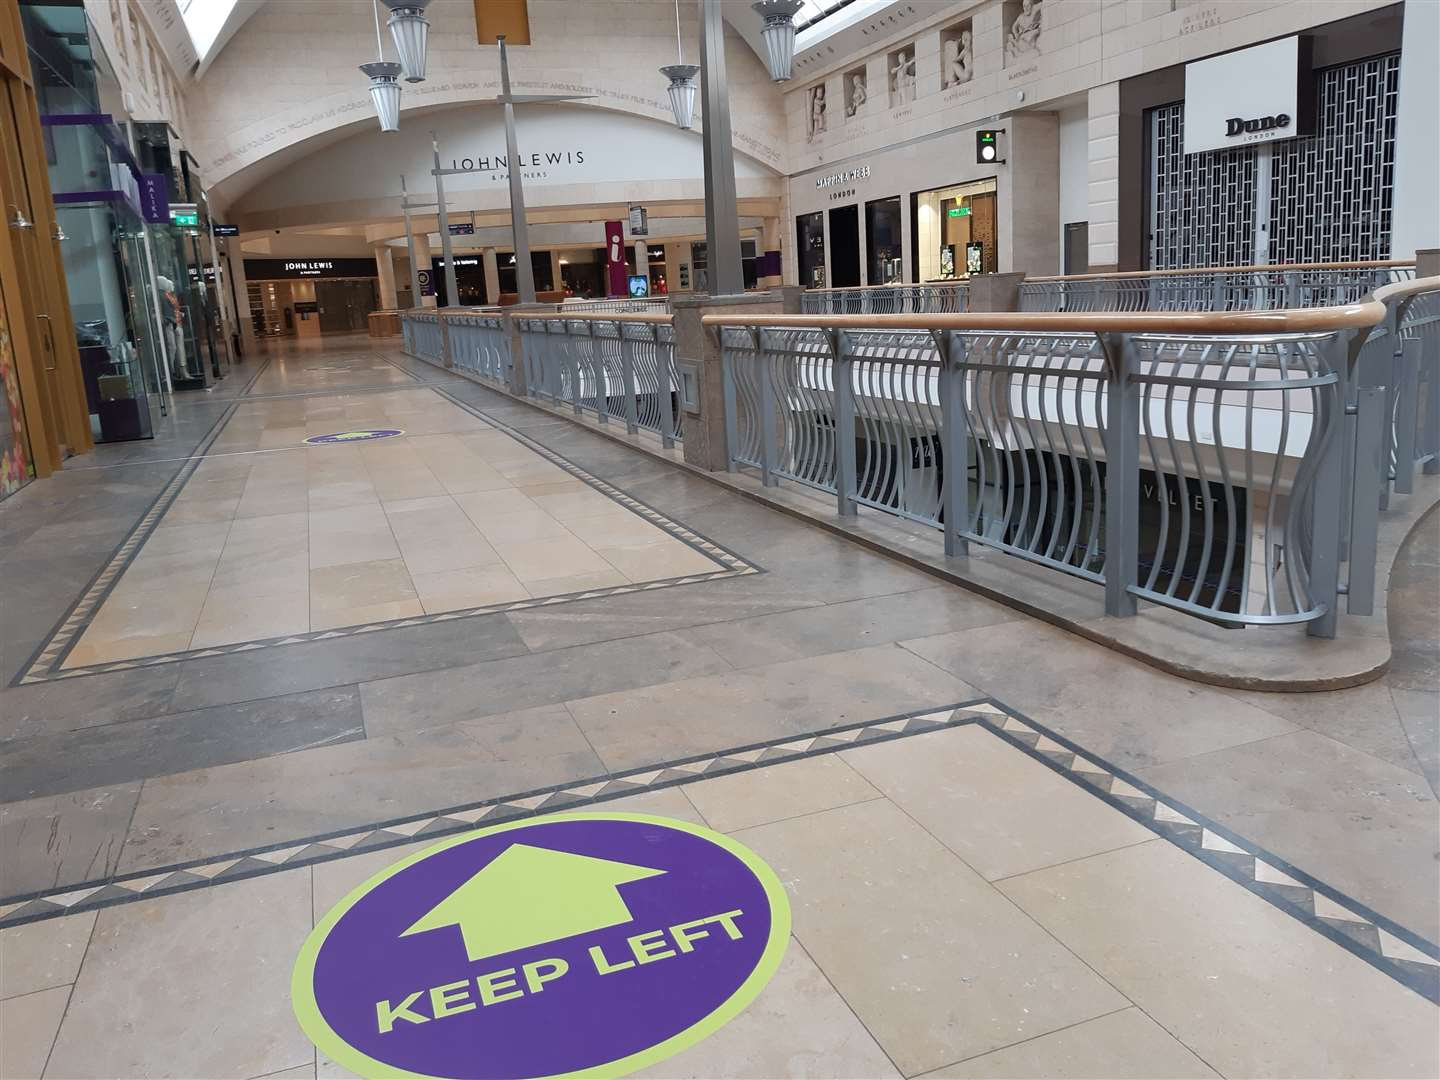 Shopping centres will hope the crowds flock back when stores reopen on April 12